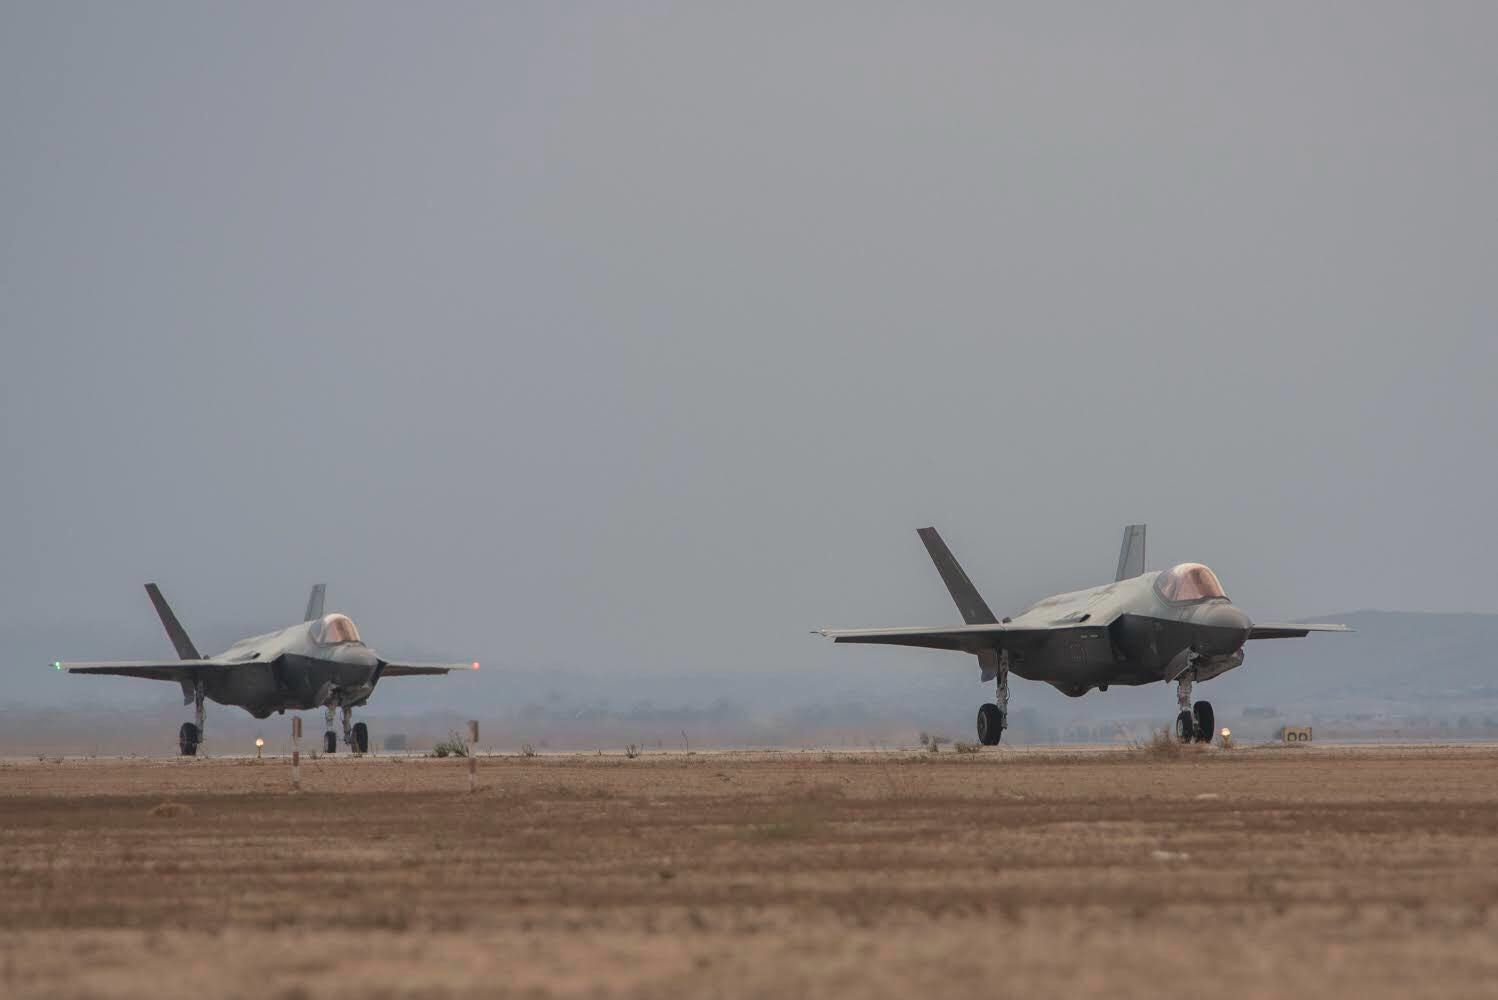 US, worldwide  partners temporarily suspend some F-35 flight operations